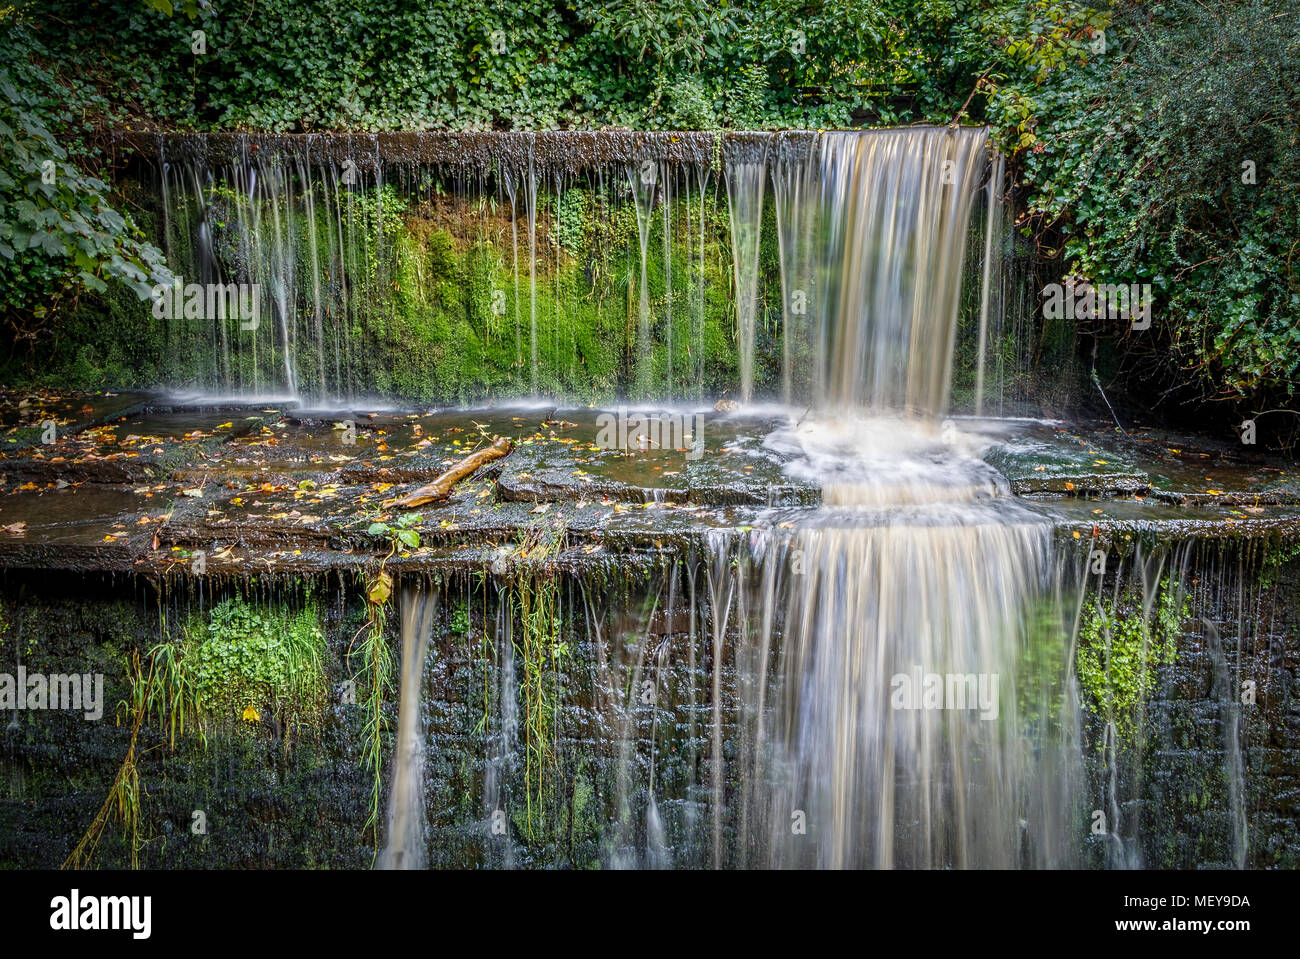 Small waterfall over man-made stepped escarpment alongside the Spring Branch Canal in Skipton, North Yorkshire, UK. - Stock Image